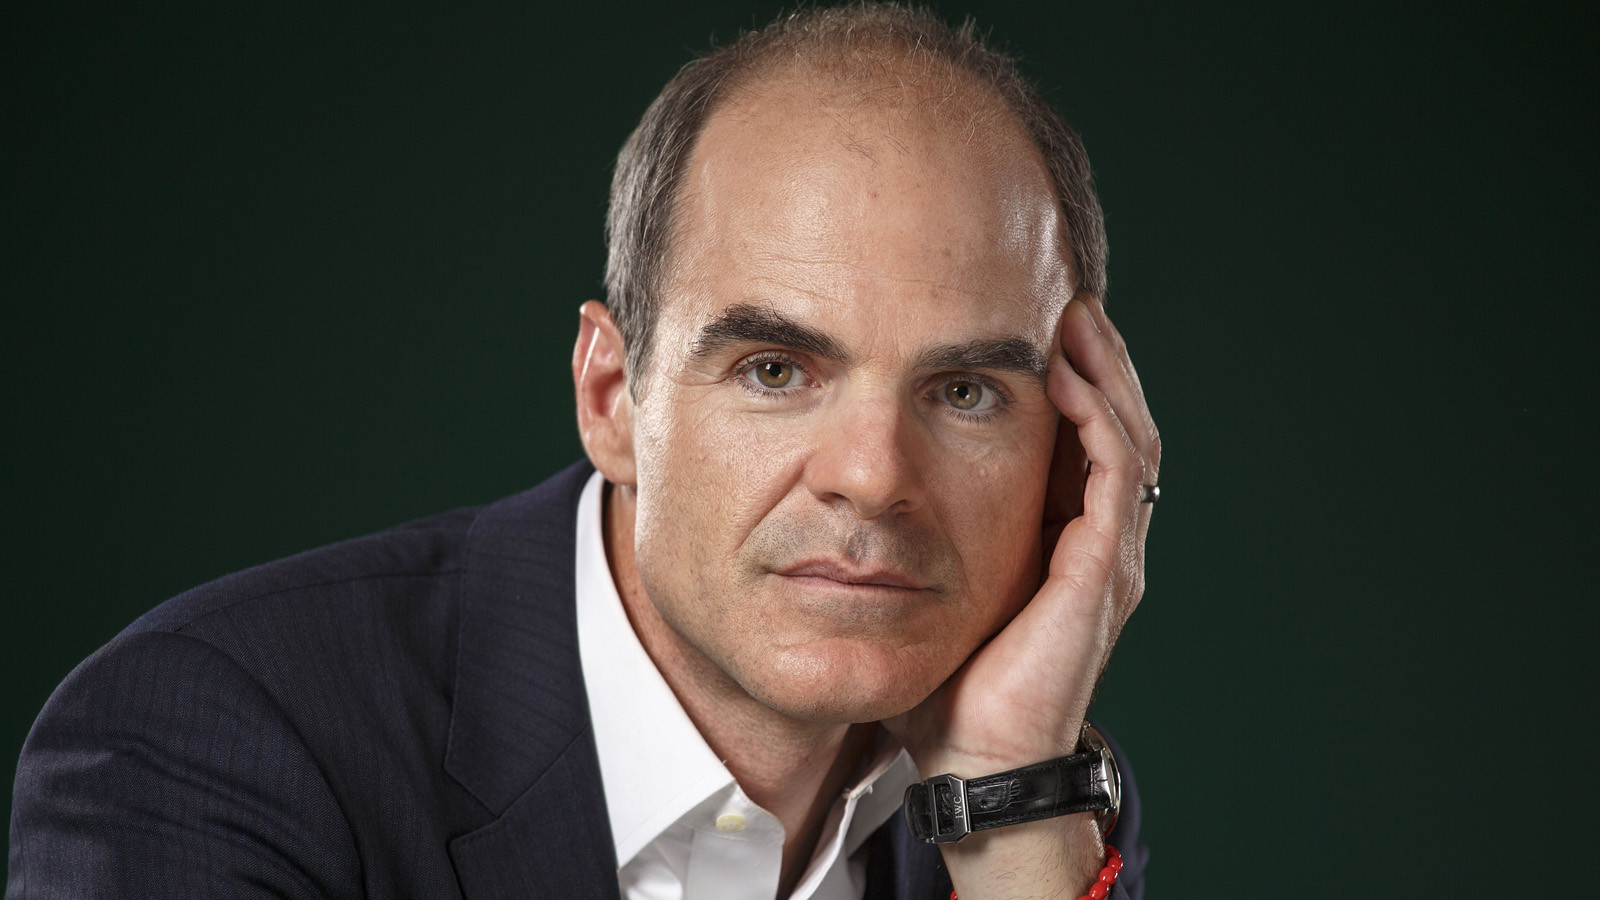 michael kelly computer wallpaper 62505